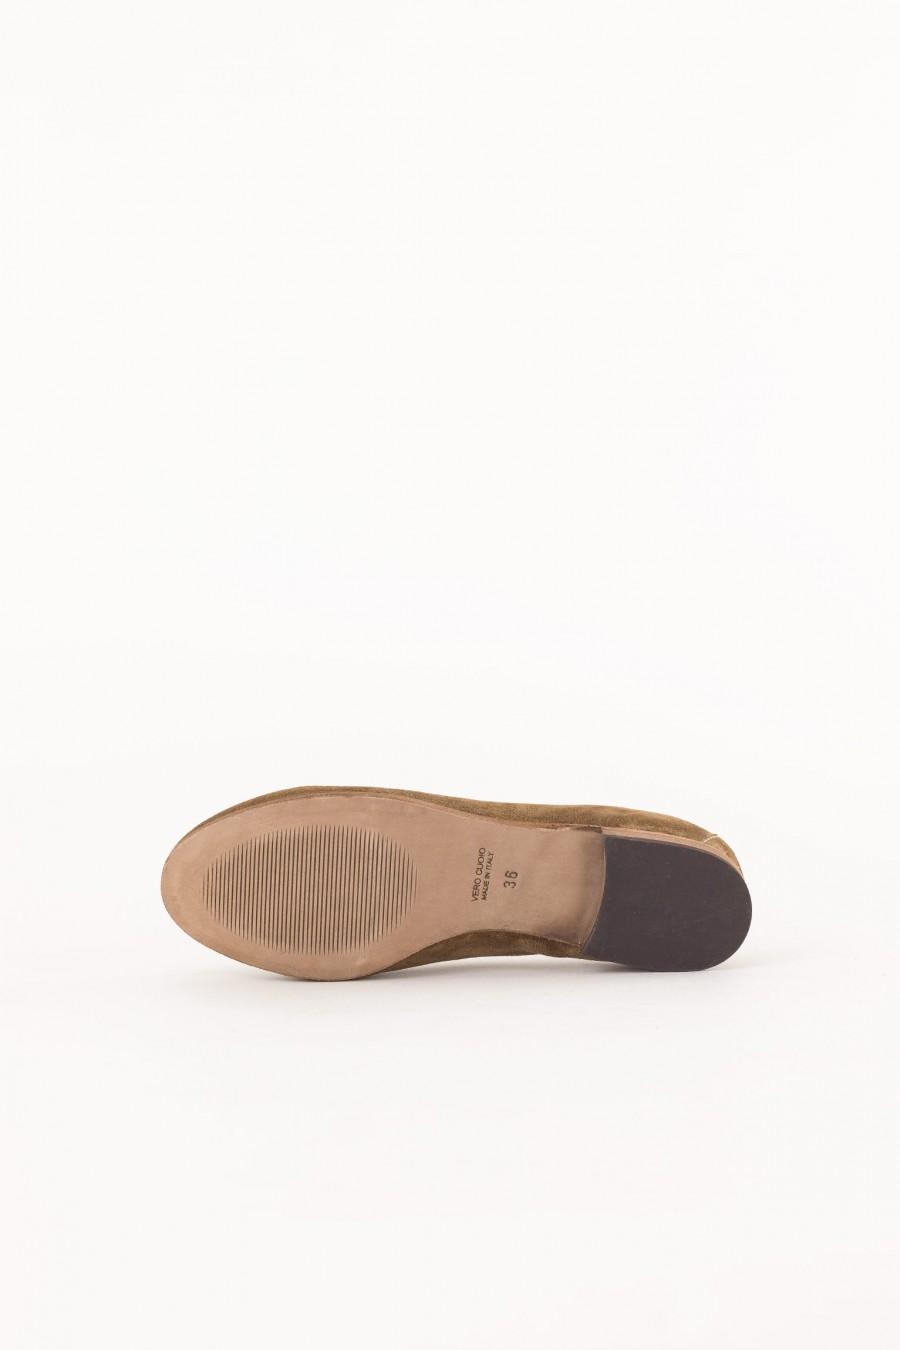 suede brown shoe closed